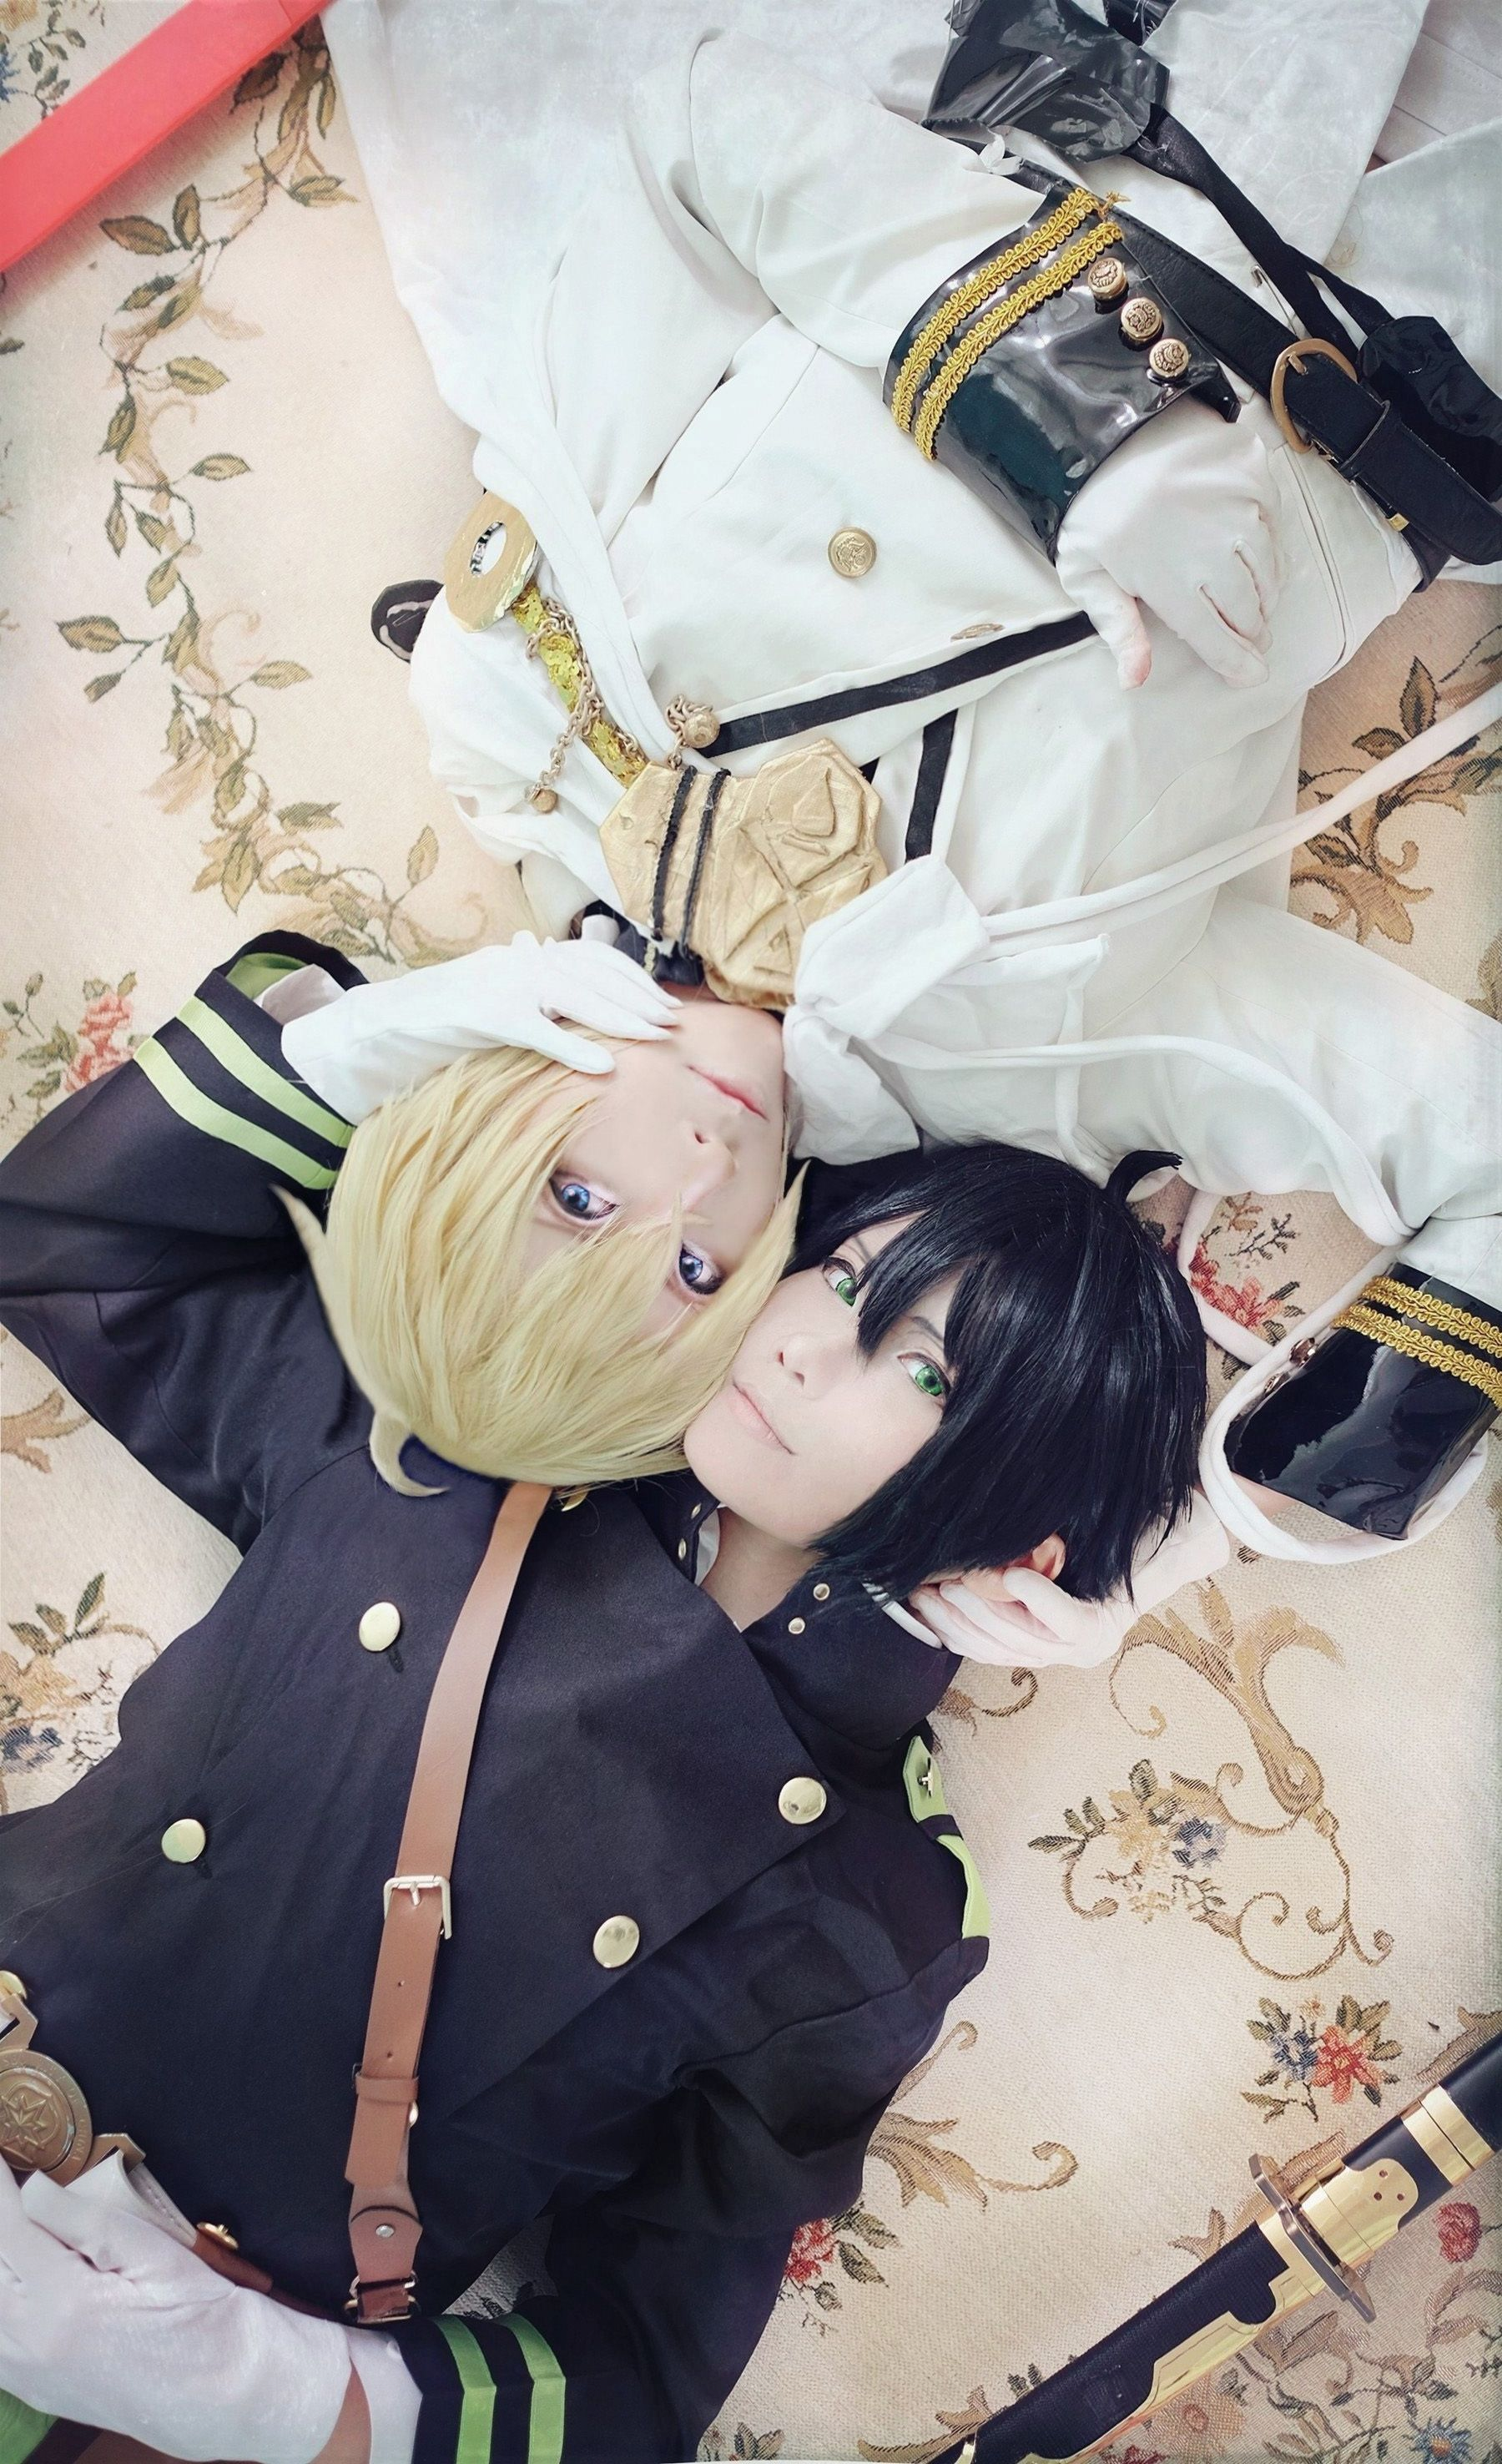 Chikami yuichiro byakuya cosplay photo worldcosplay owari free website for submitting cosplay photos and is used by cosplayers in countries all around the world even if youre not a cosplayer yourself you can solutioingenieria Image collections